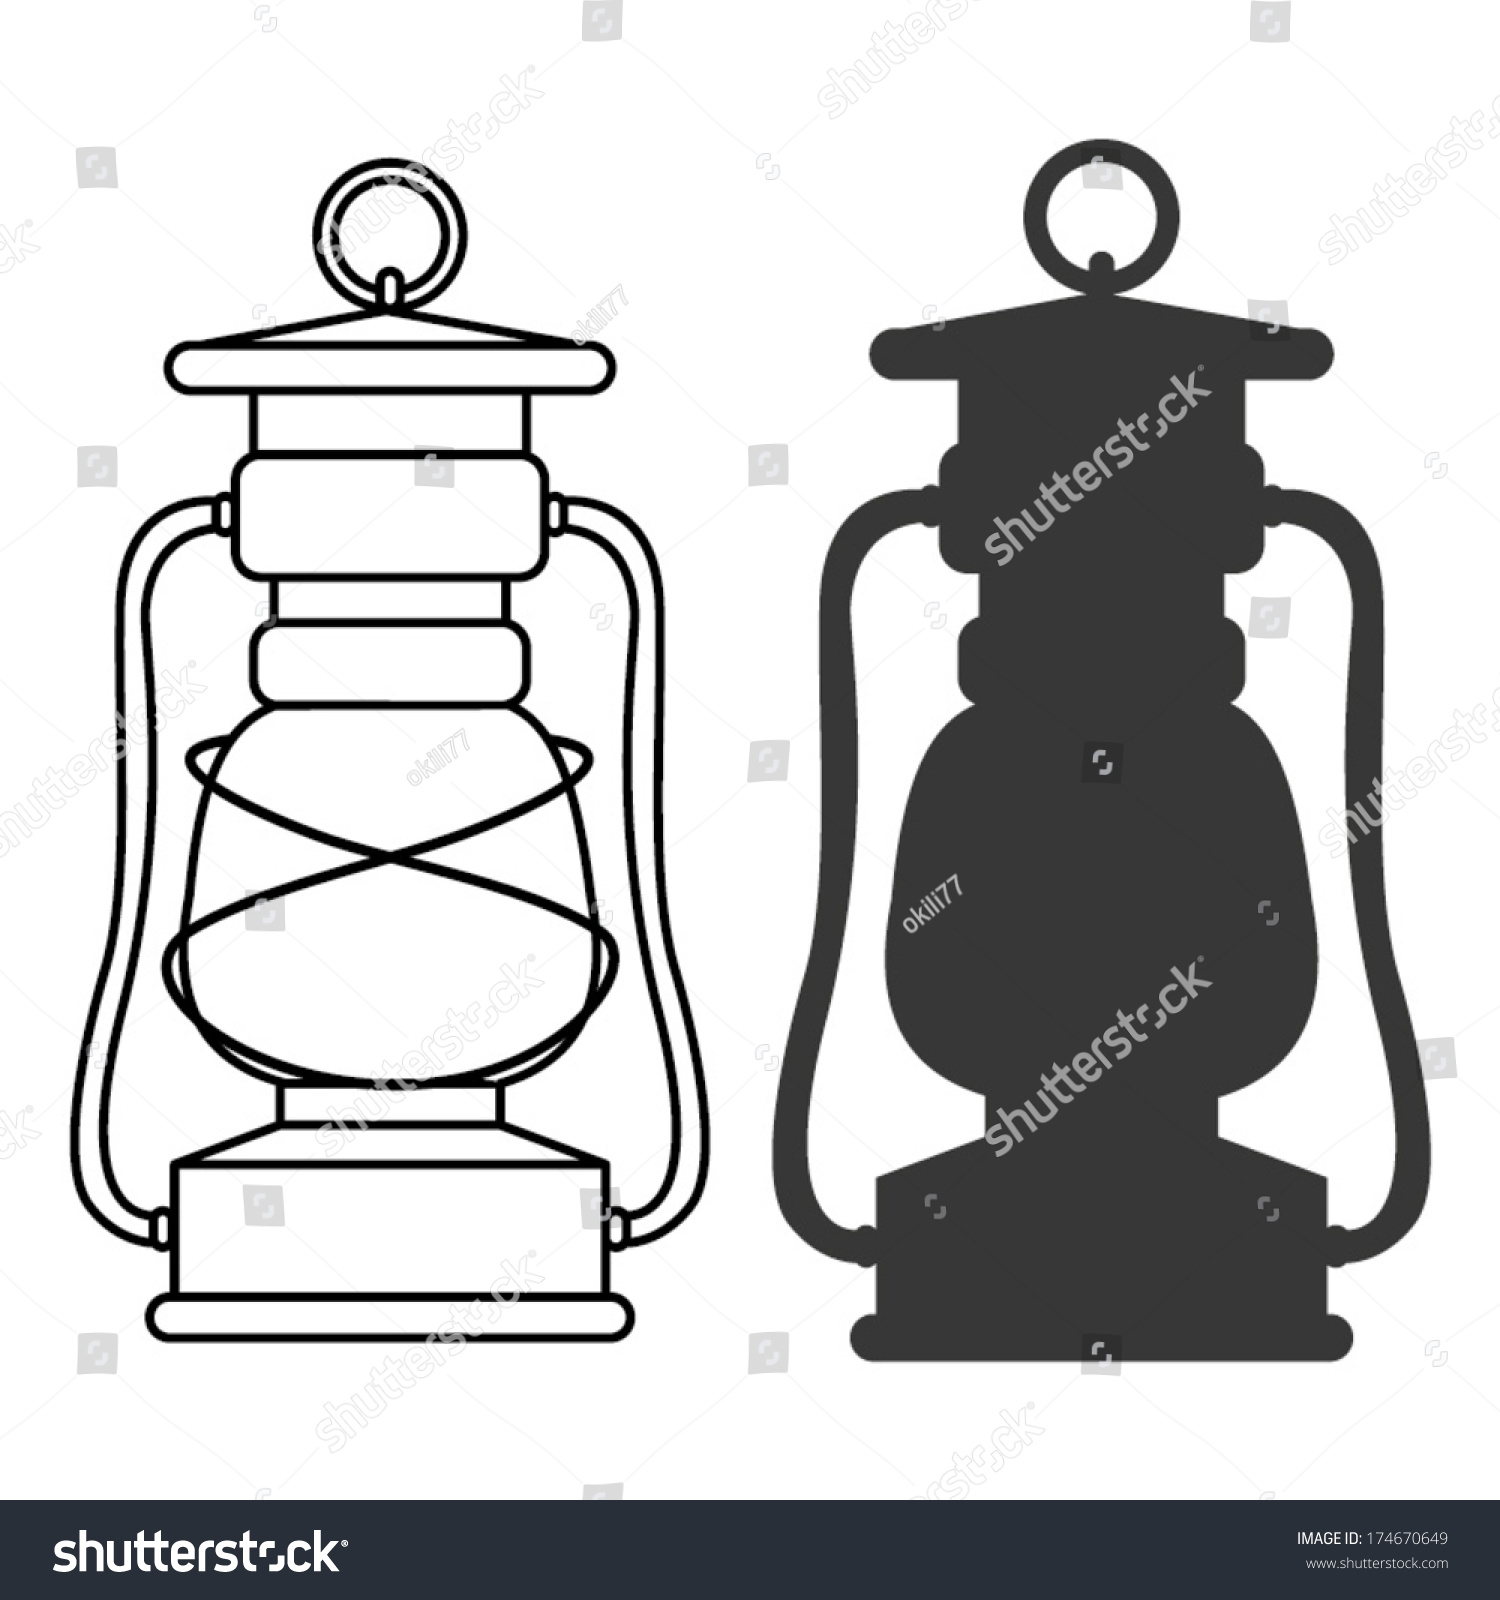 how to draw a camping lantern